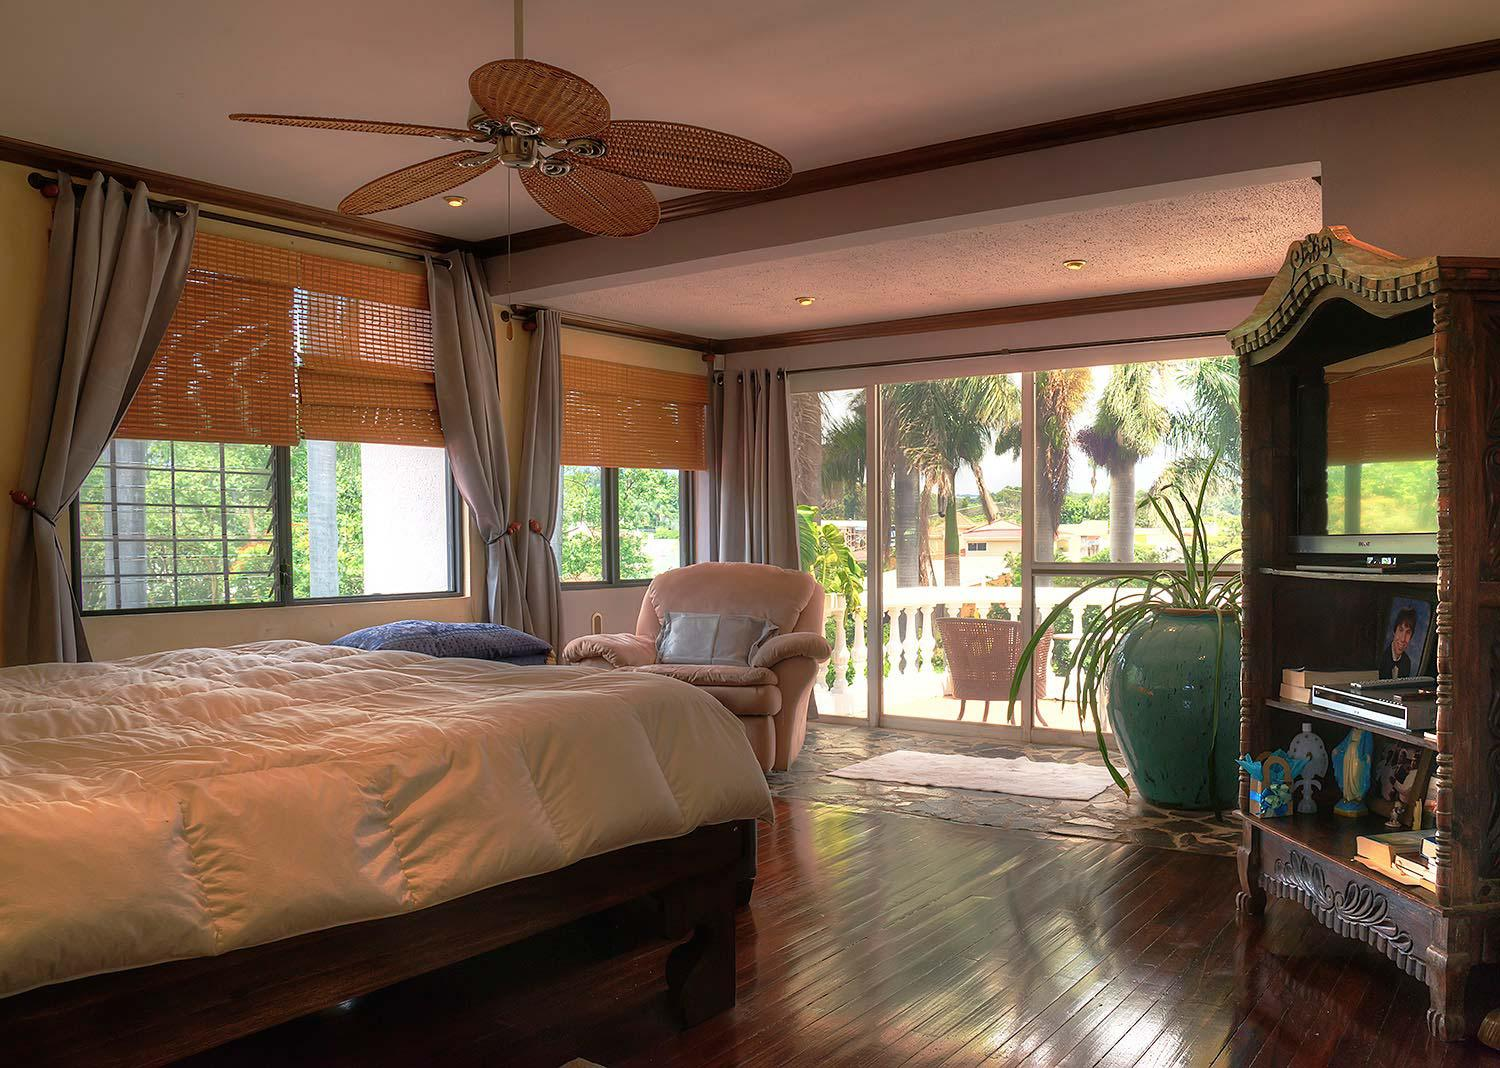 Costa Rica, Real Estate, Golf front, Home for sale, private pool, guest house, 7 bedrooms, 6 bathrooms, Cariari Golf Course, estate, golf properties, 9th hole view